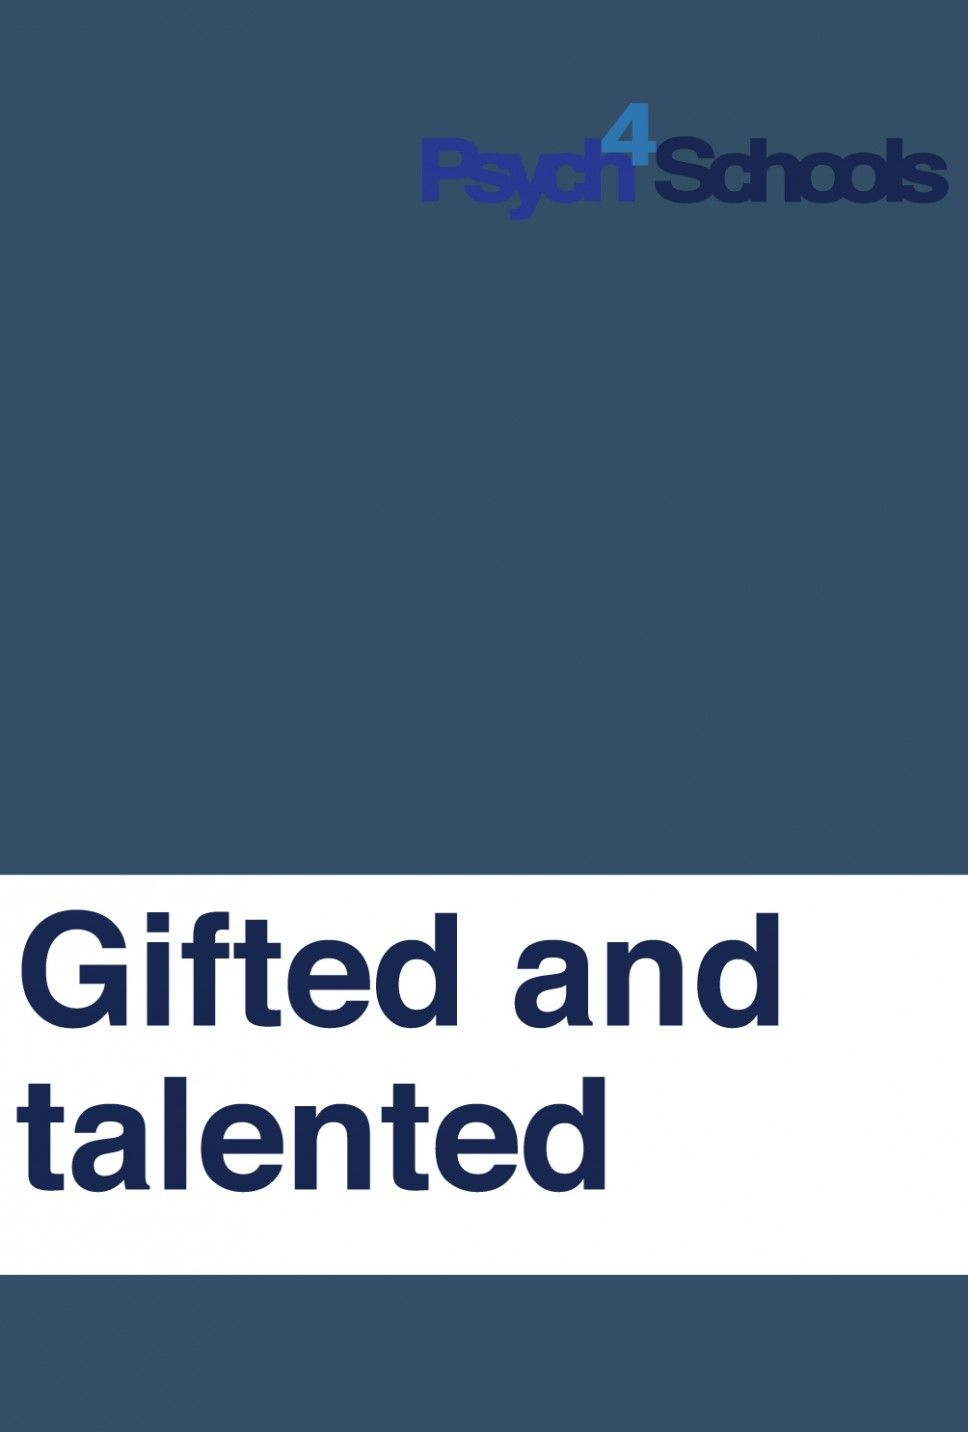 Gifted and talented free resources free resources